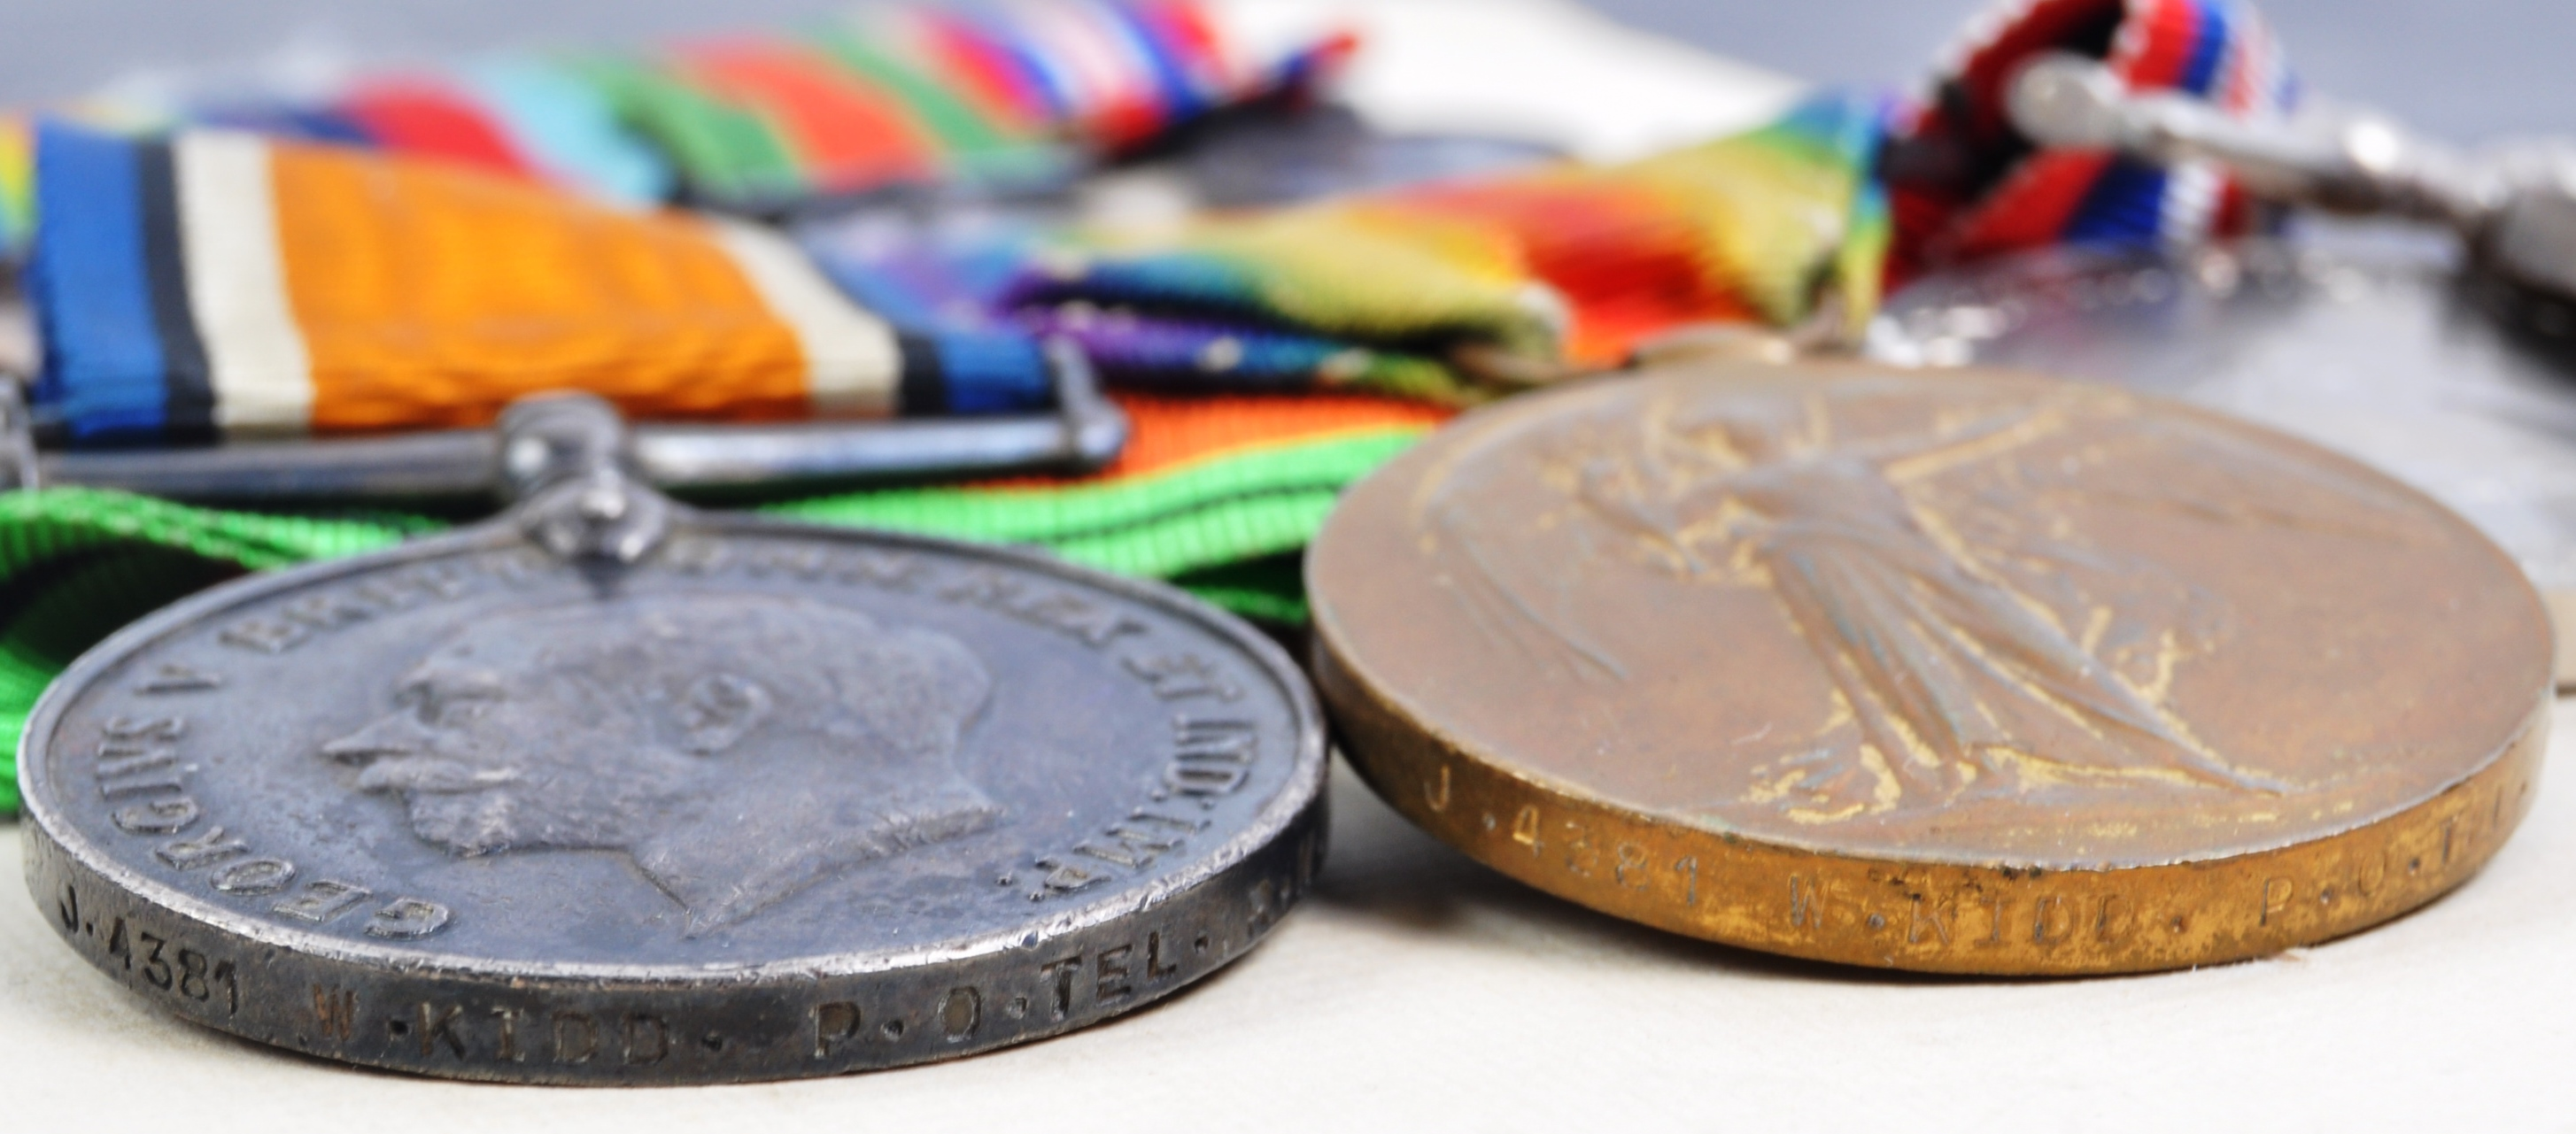 WWI & WWII SECOND WORLD WAR MEDAL GROUP - ROYAL NAVY - Image 3 of 5